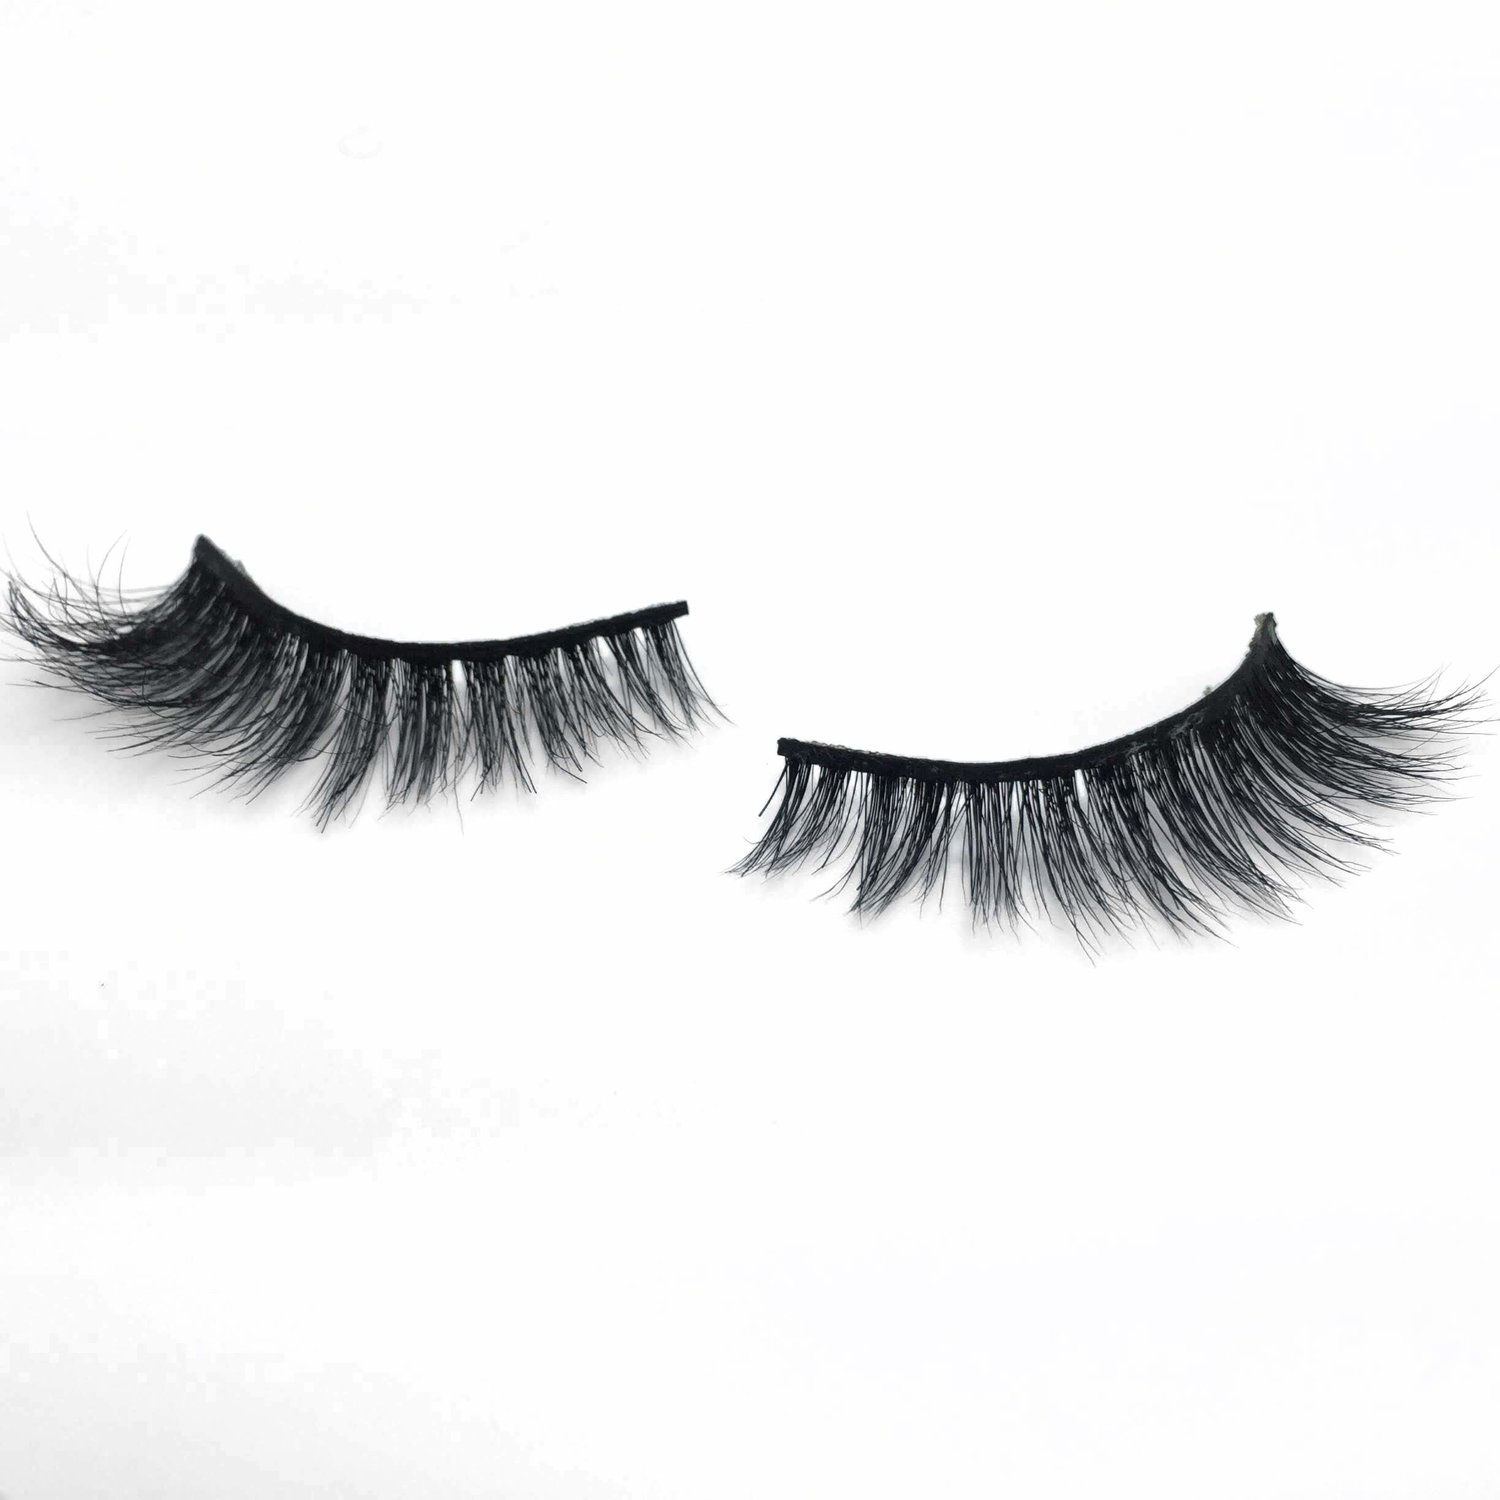 QUEEN JU - Not too much, not too little. Perfect for the girl who doesn't wear lashes much; but once she does, she keeps it glam!BUY NOW